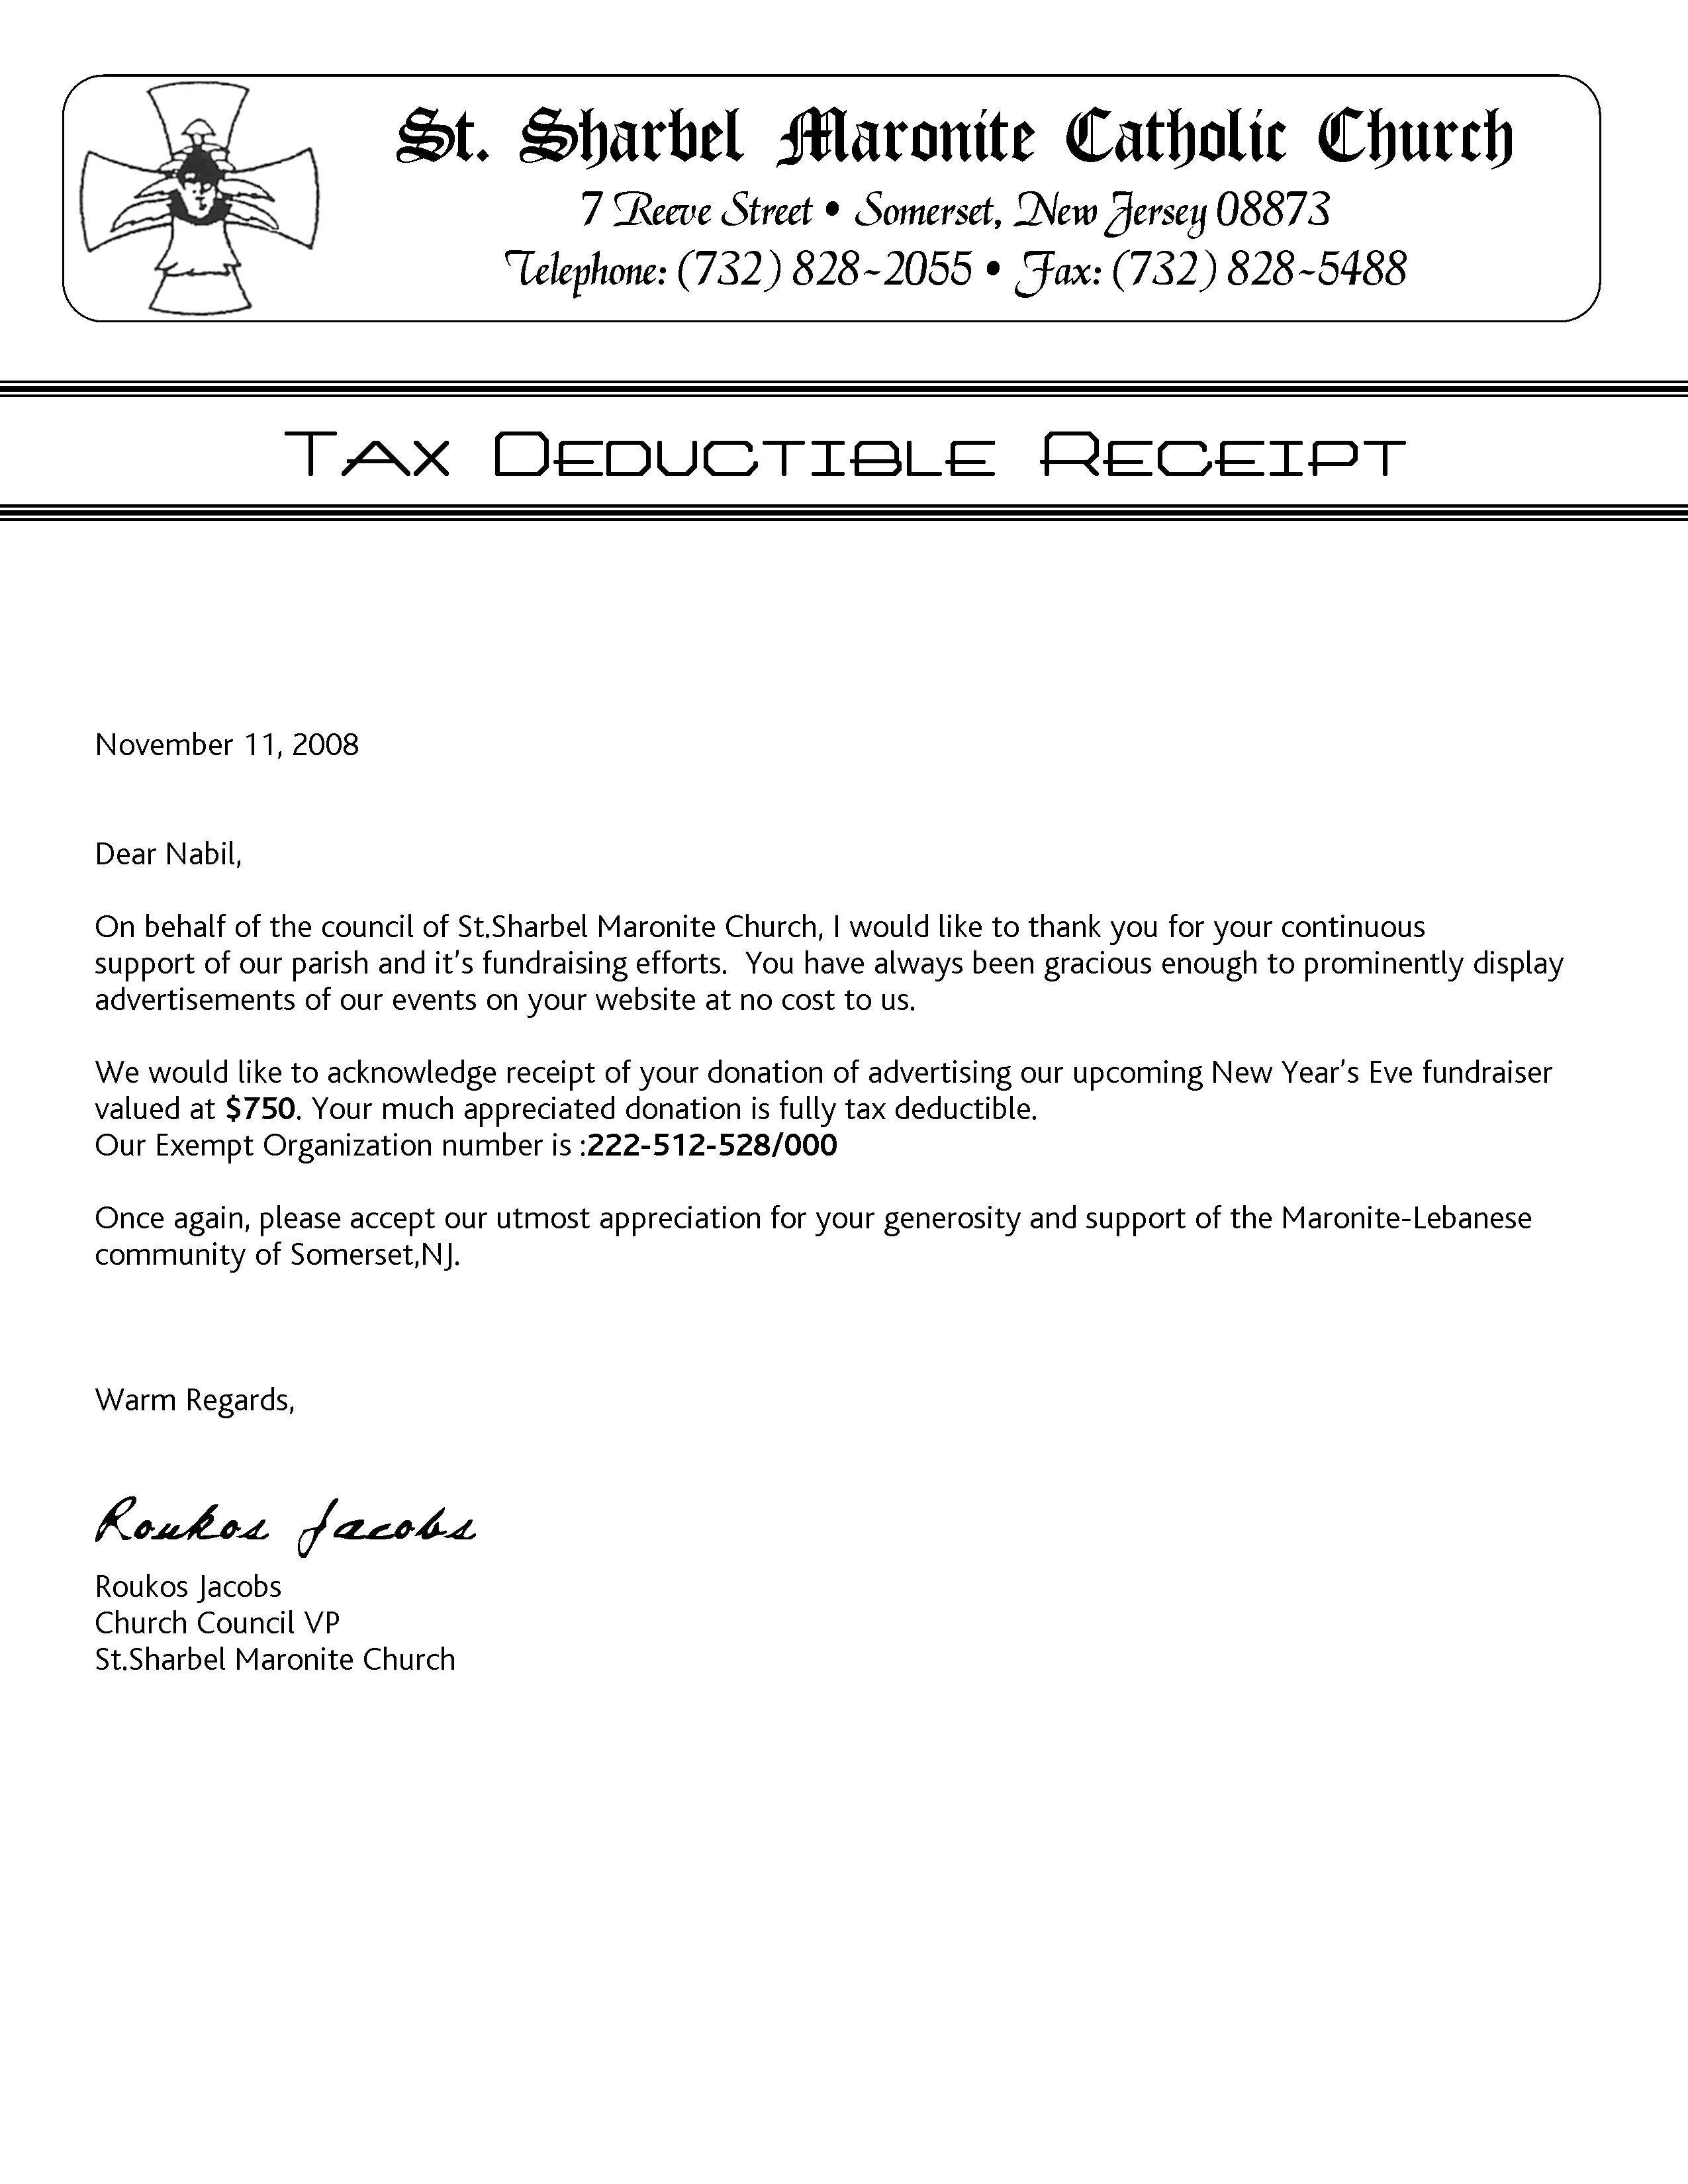 Tax Deductible Donation Letter Template